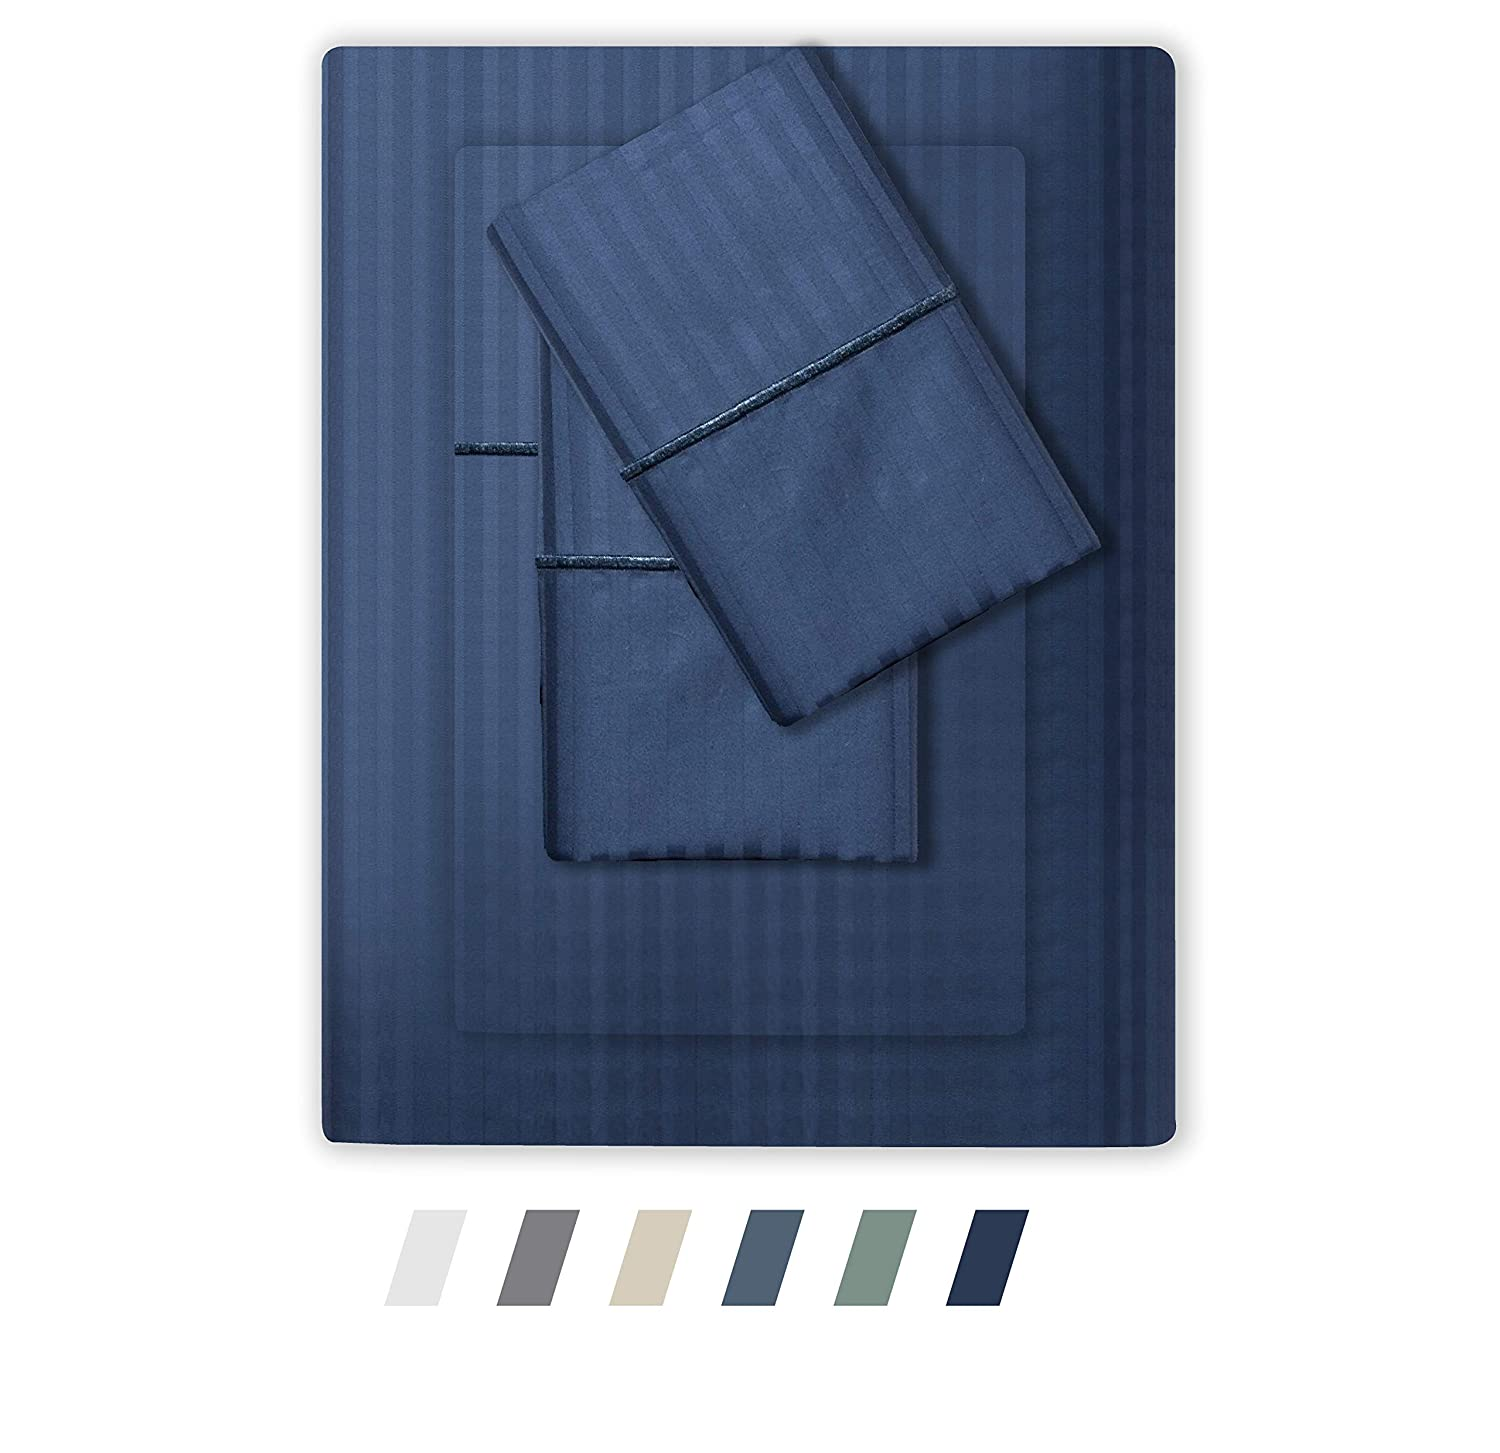 FEATHER & STITCH NEW YORK 500 Thread Count 100% Cotton Sheet Set, Stripe Sheets, Soft Sateen Weave,King Sheets, Deep Pockets,Hotel Collection,Luxury Bedding Super Sale 100% Cotton (Dark Blue, King)